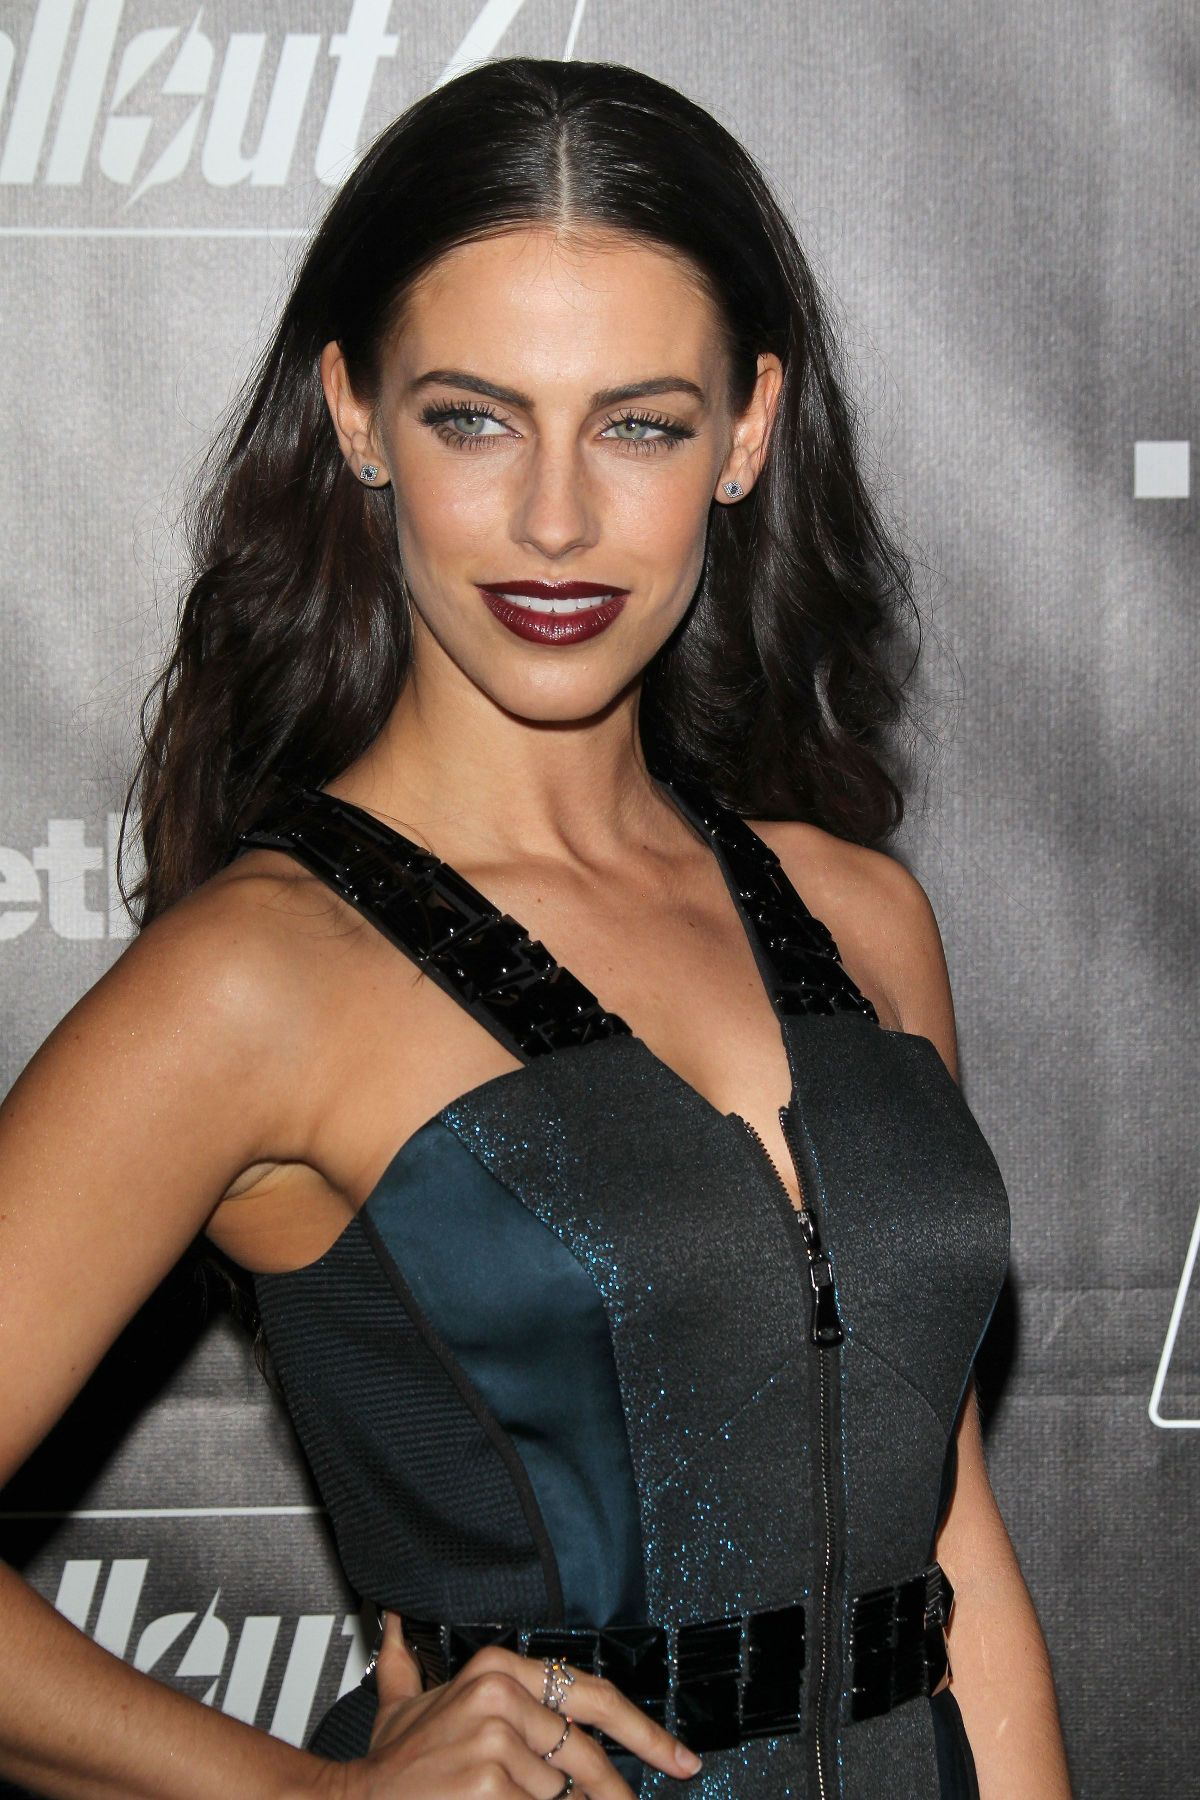 Jessica Lowndes At Fallout 4 Video Game Launch Event - Celebzz